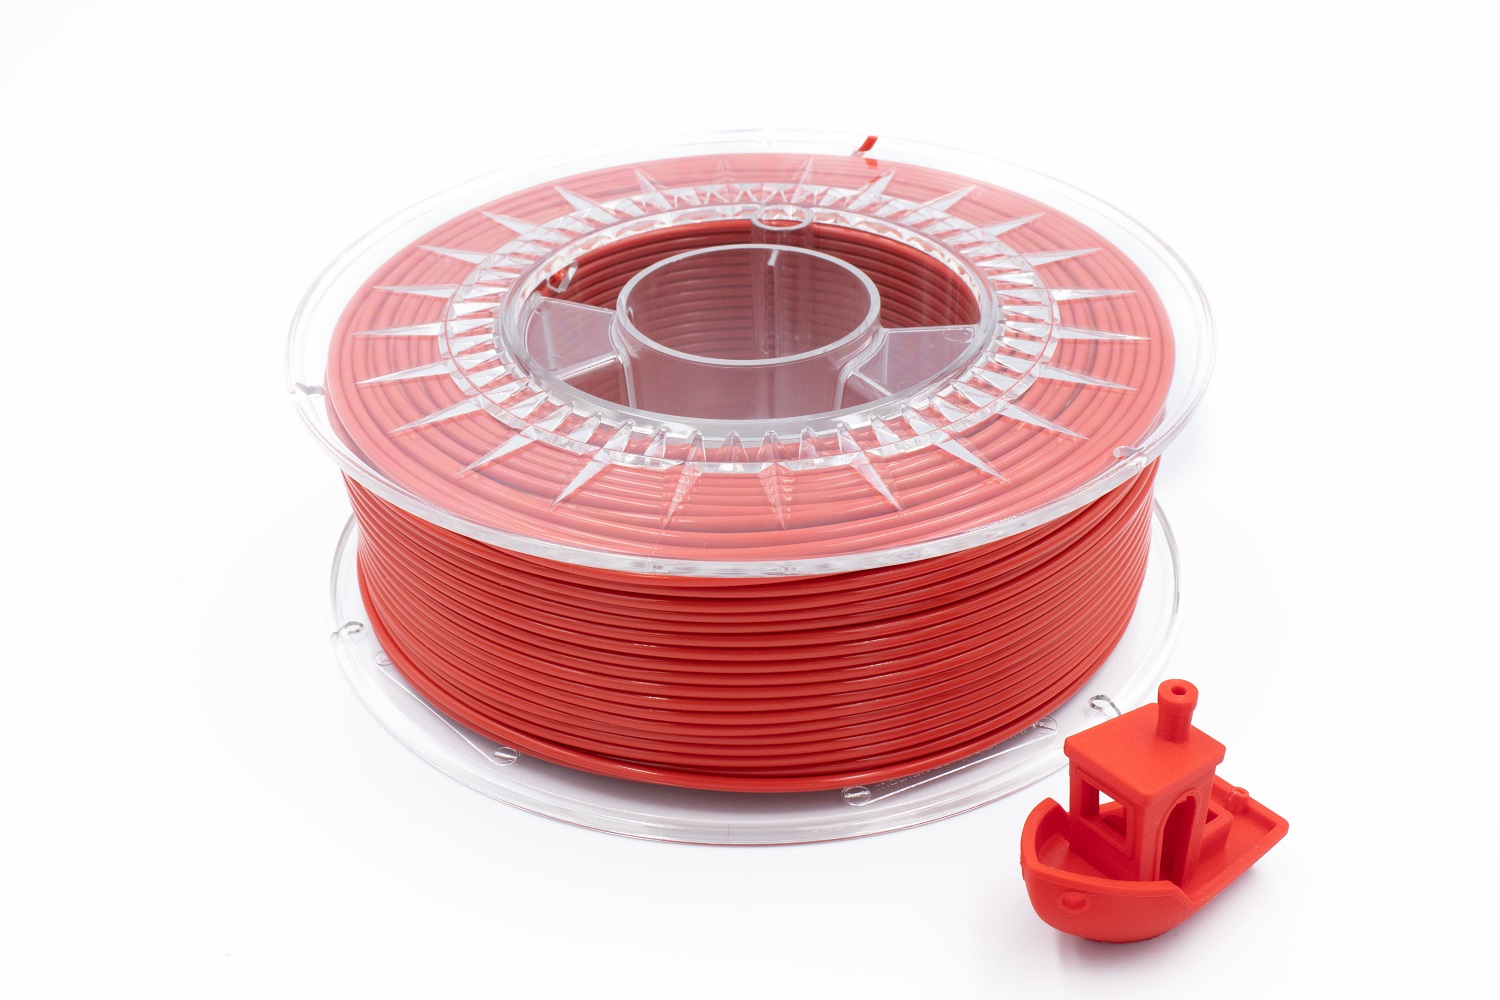 More info on Red Balloon Filament